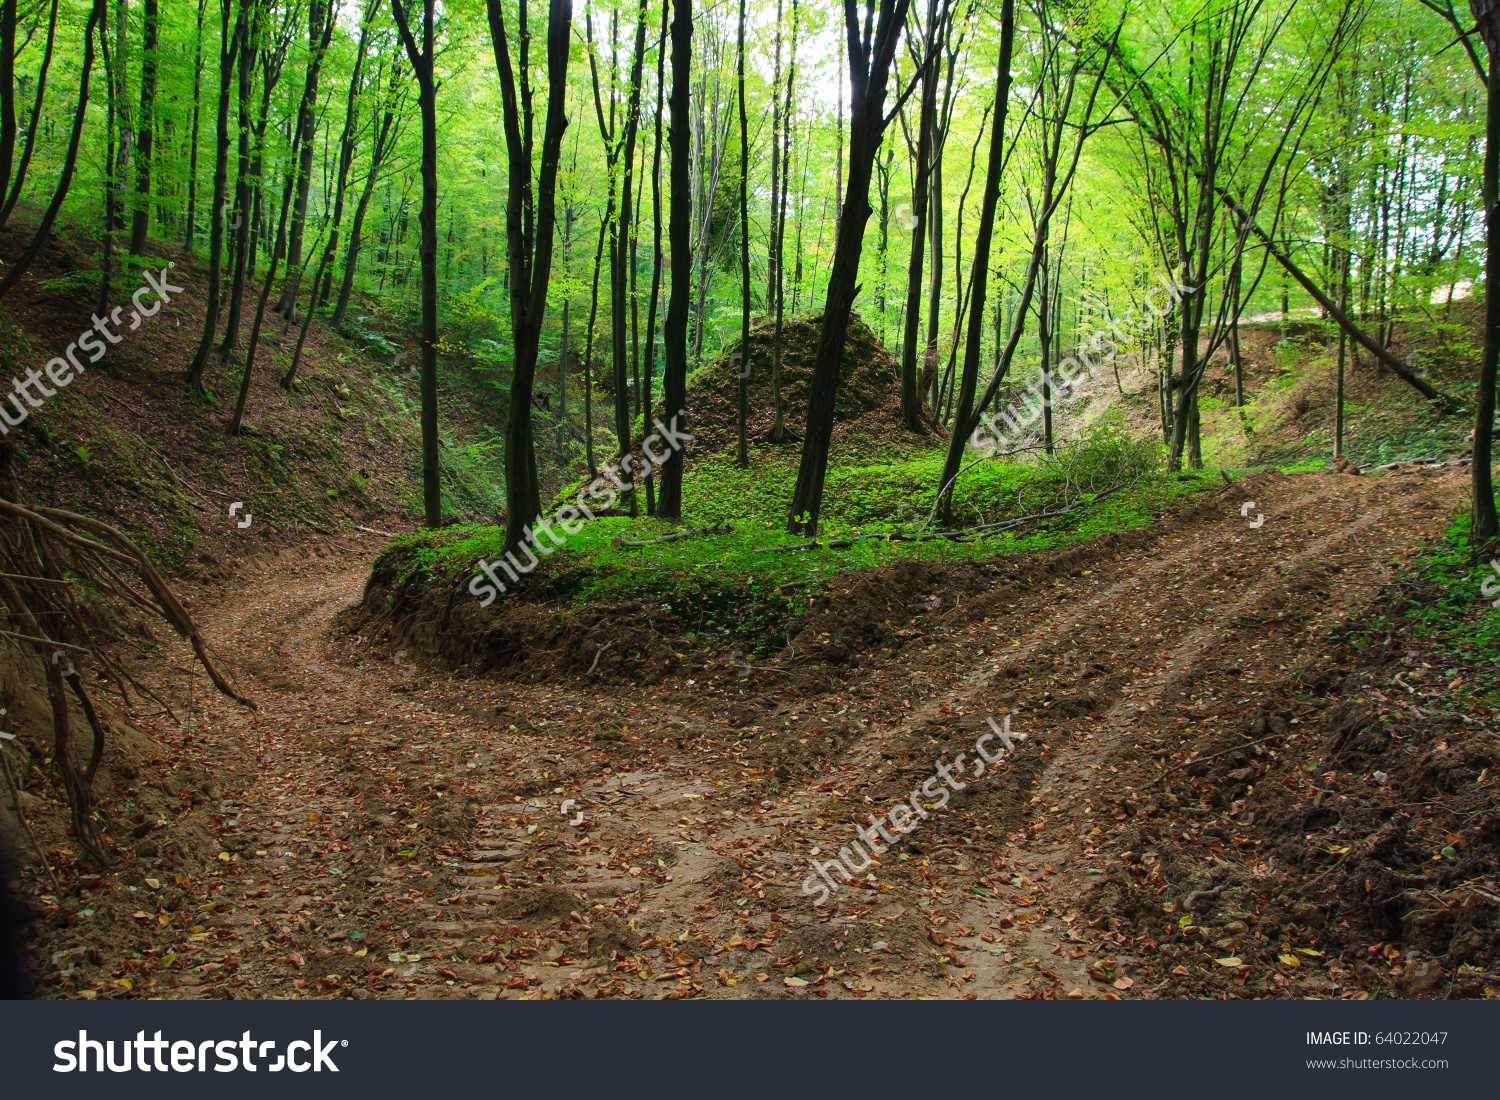 Muddy Forest Road Autumn Ravine Colourful Stock Photo 64022047.